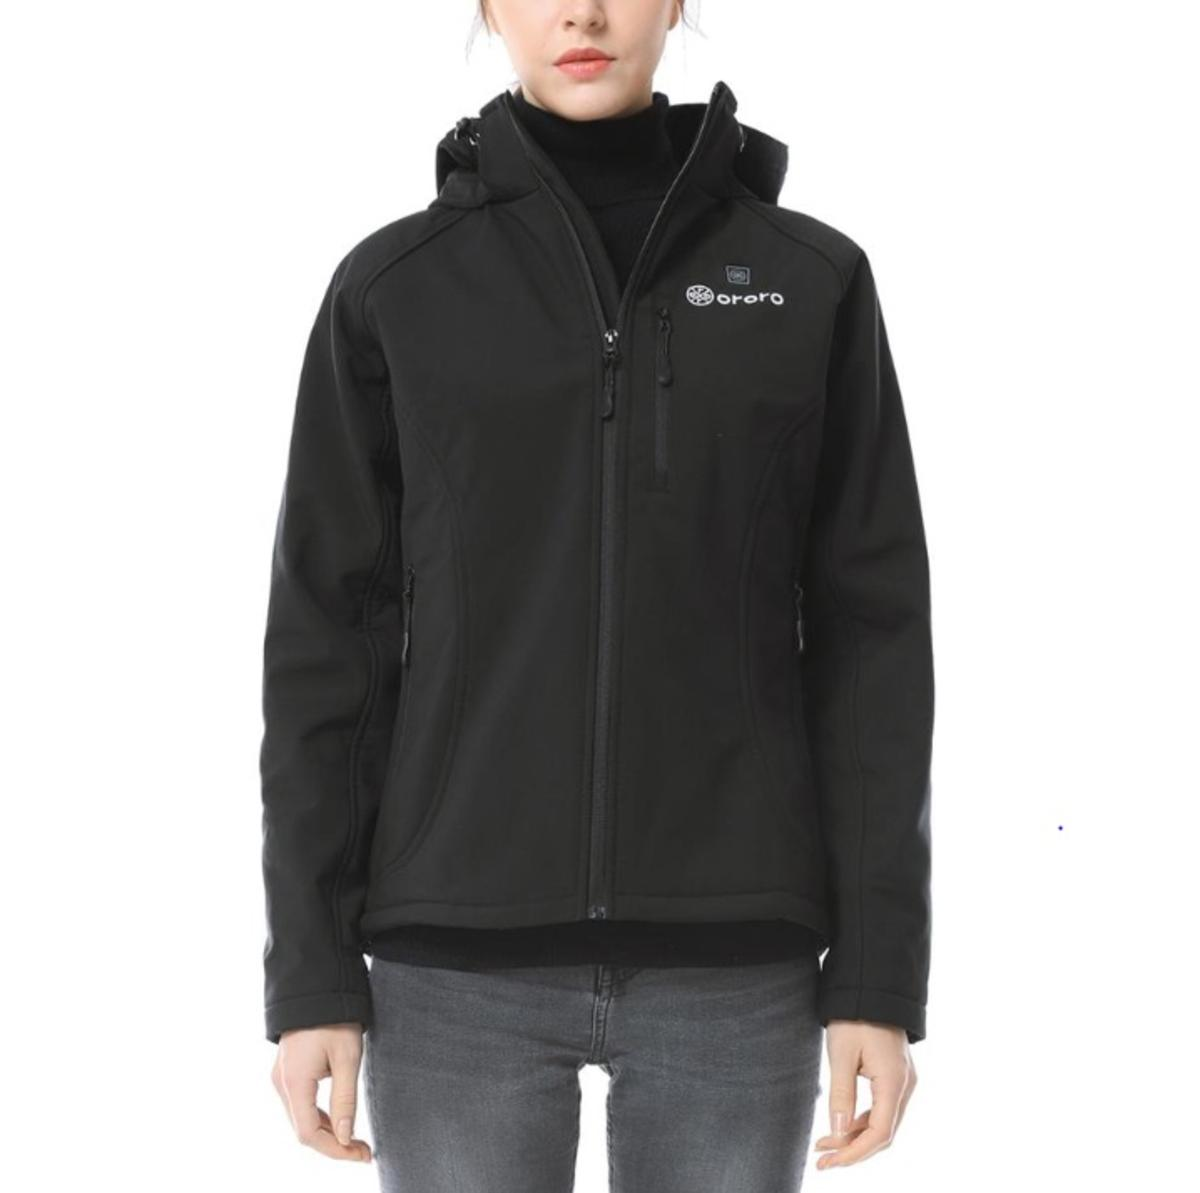 12662980a572 Ororo Battery Heated Women s Heated Jacket - The Warming Store